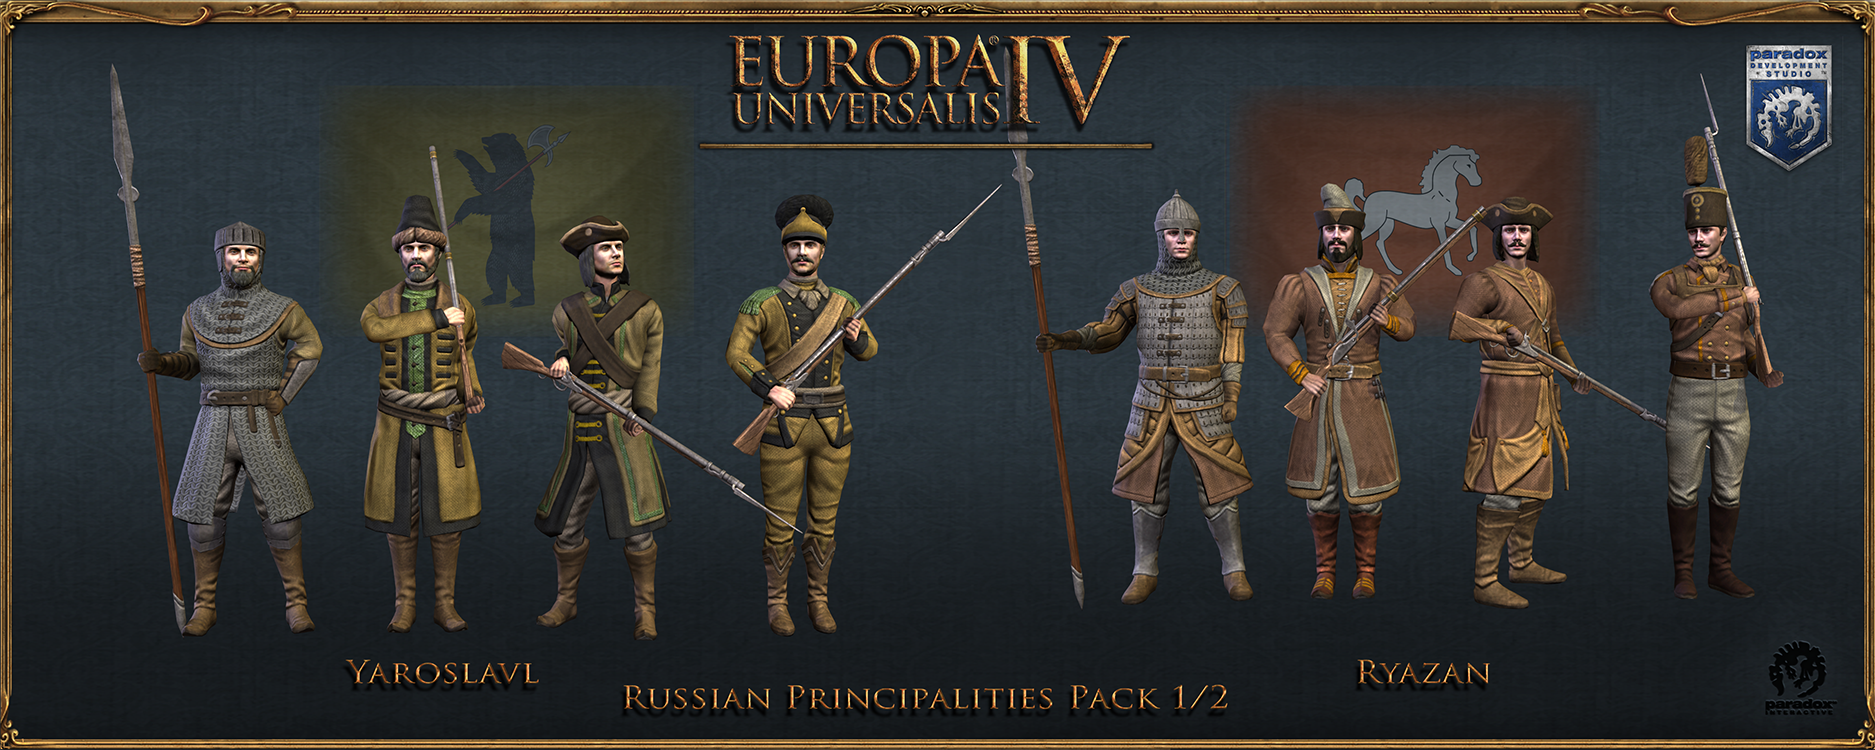 europa universalis iv dlc render pictures archive paradox